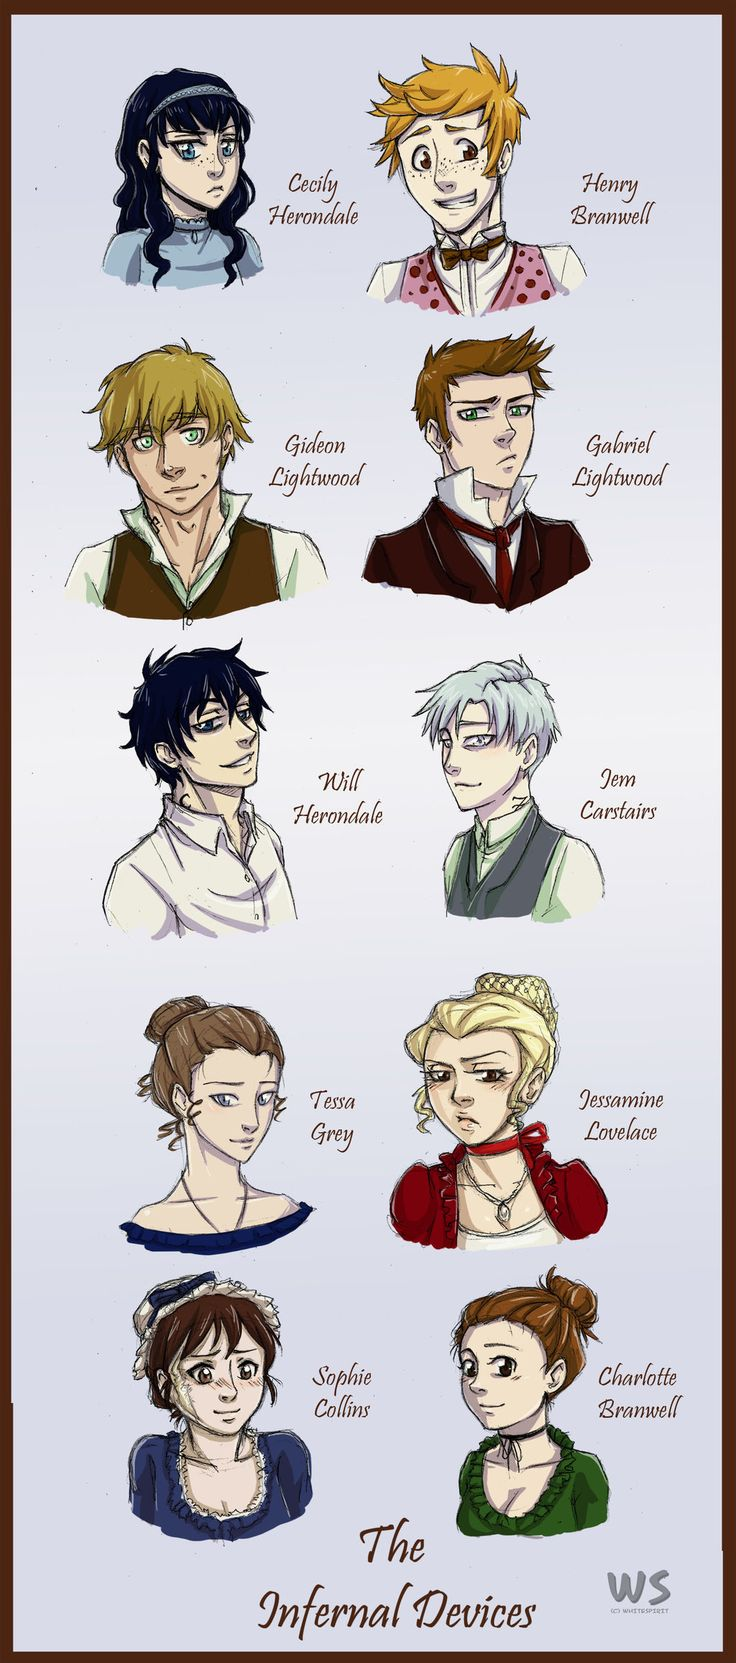 Character Chart - The Infernal Devices: Cecily, Henry, Gideon, Gabriel, Will, Jem, Tessa, Jessamine, Sophie, and Charlotte